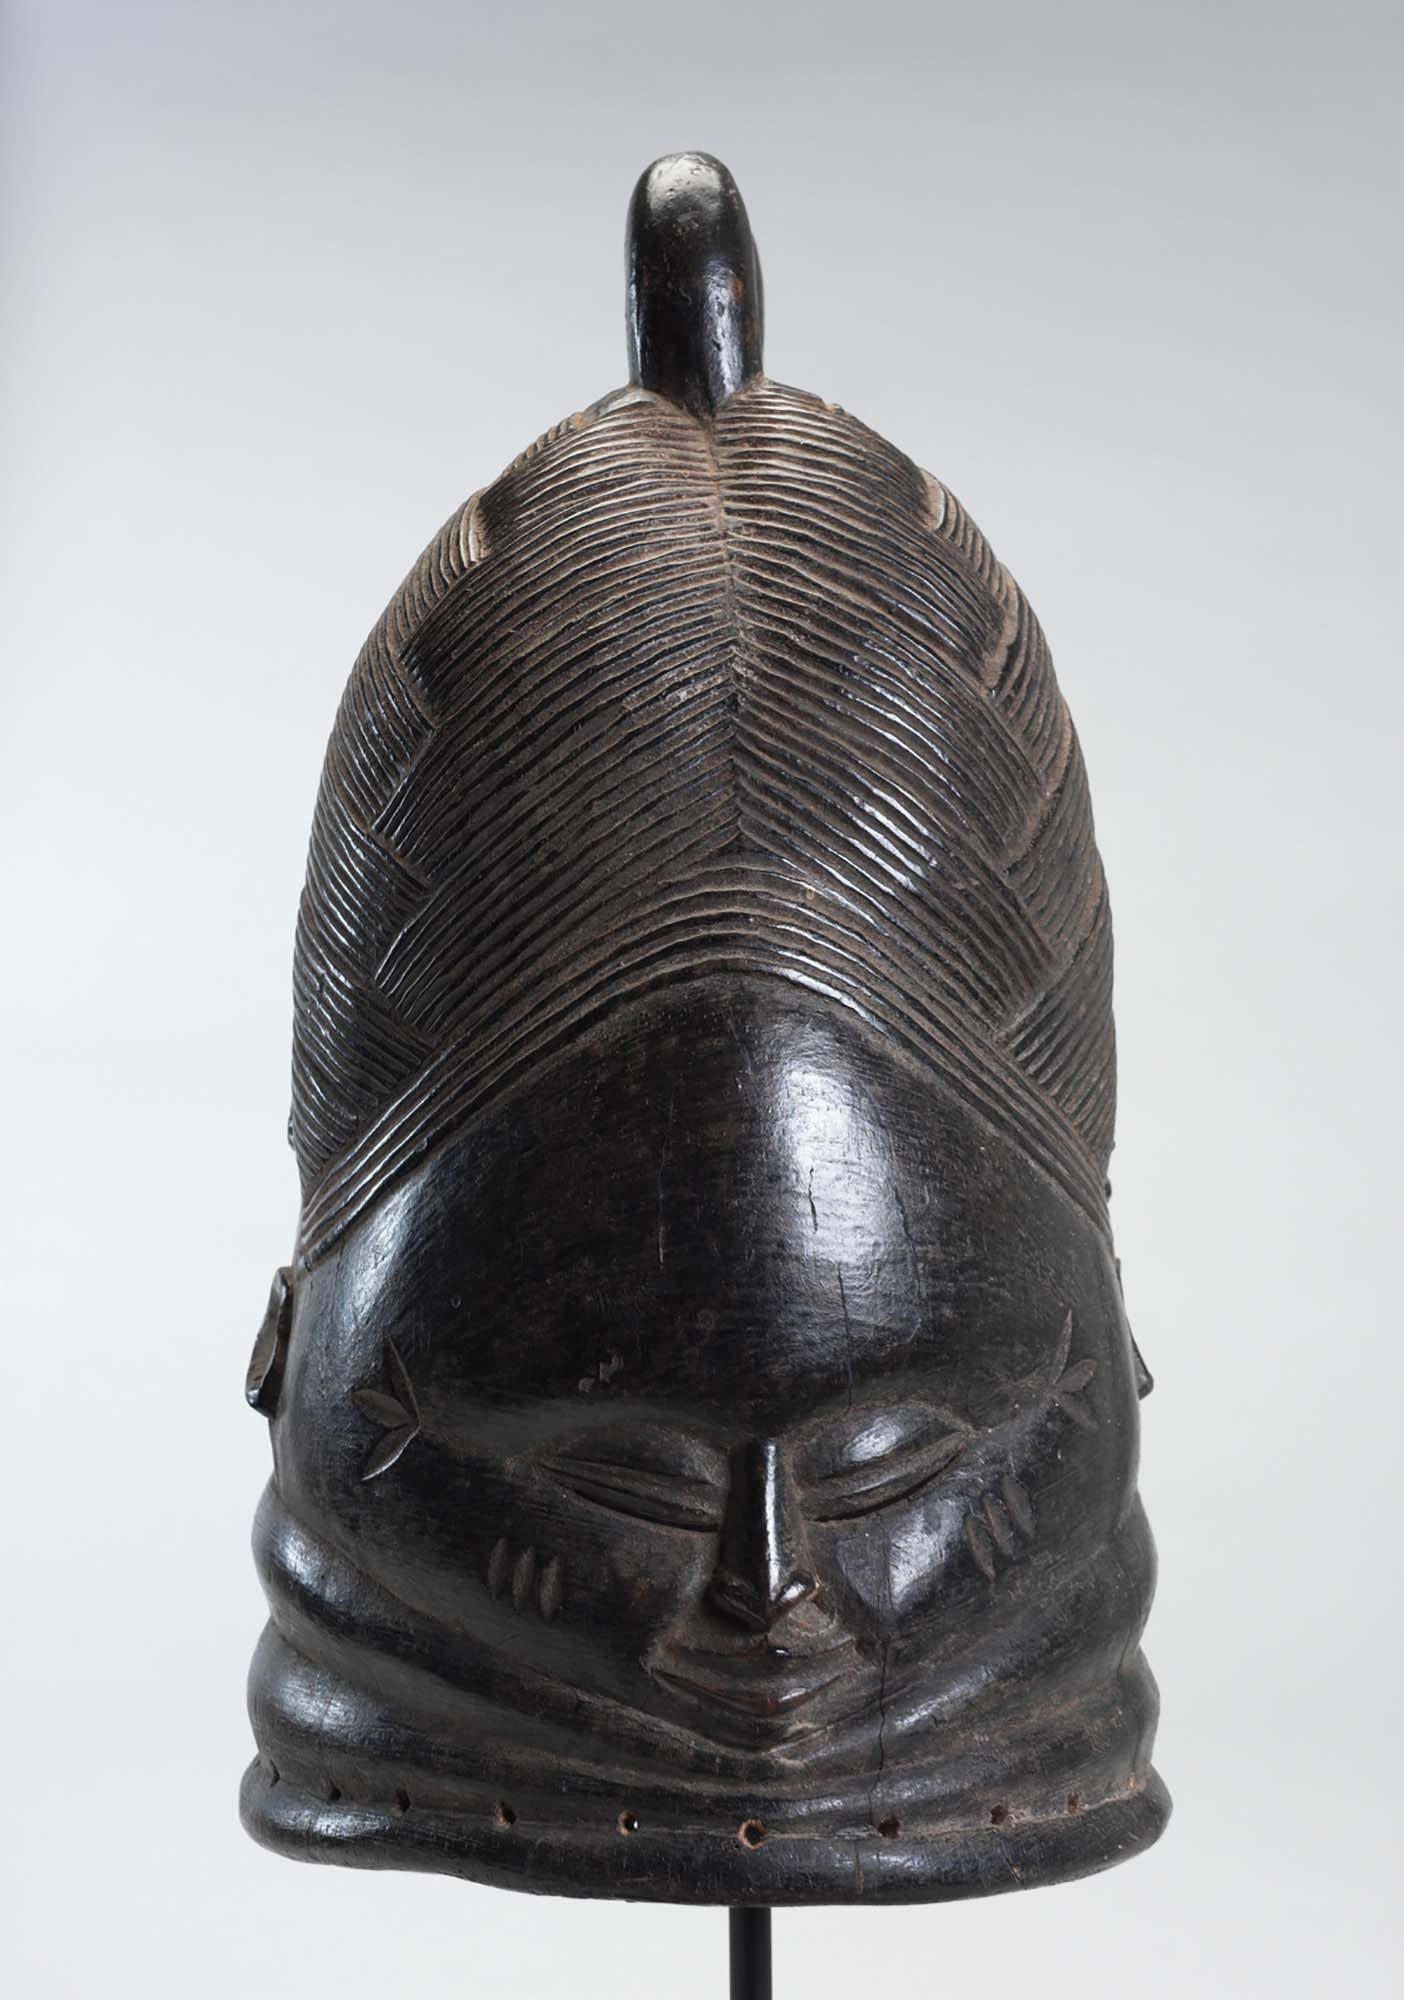 Unknown Arist (Mende People) Sande (Bondo) Society Mask, 20th century. Wood, 15 1/2 x 8 x 9 1/2 in. Gift of Dr. Oliver E. and Pamela F. Cobb, M.2005.16.3